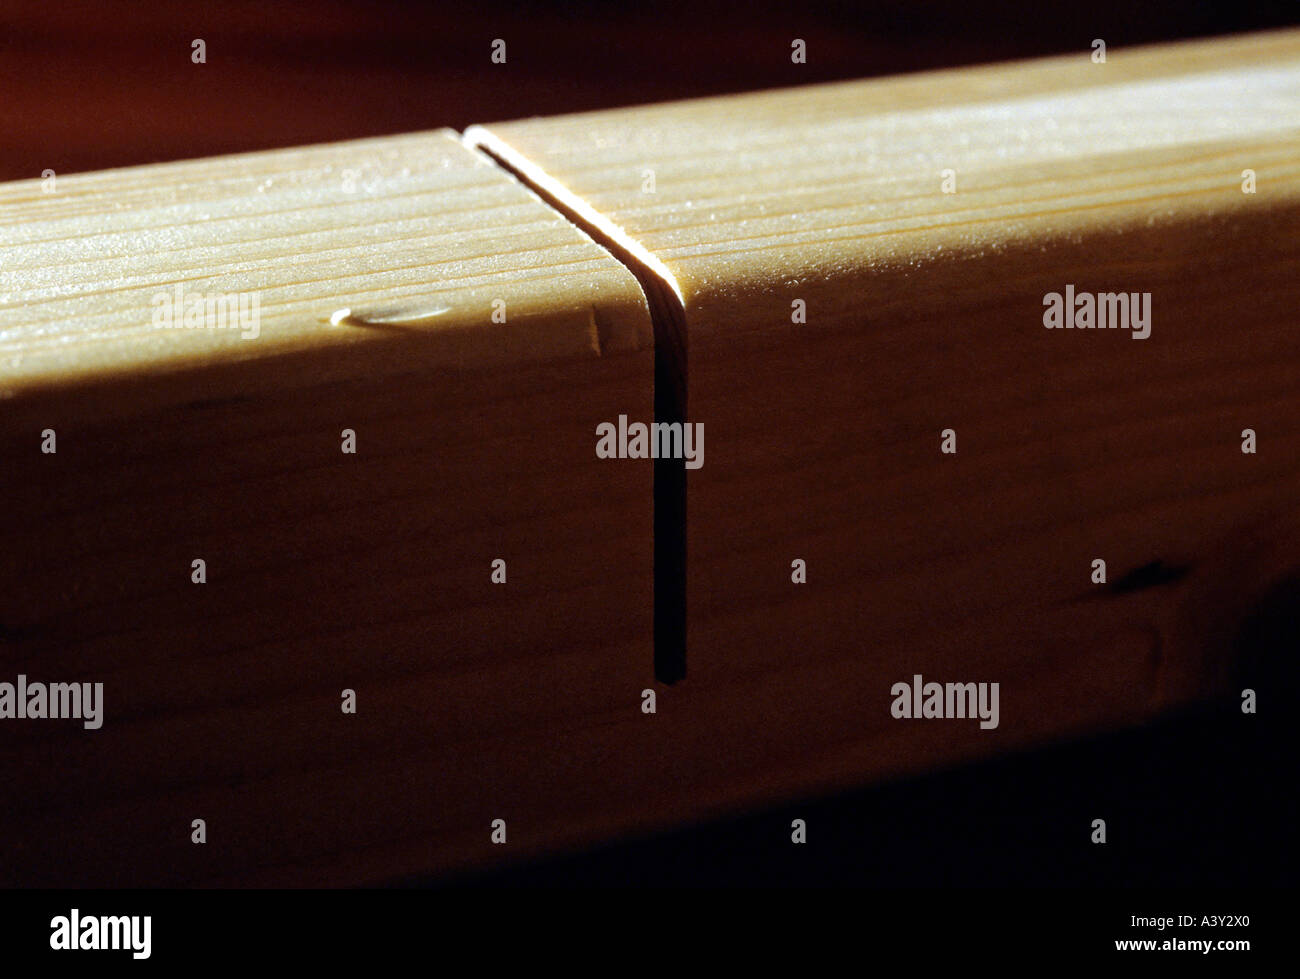 correct cut off angle in timberbeam - Stock Image